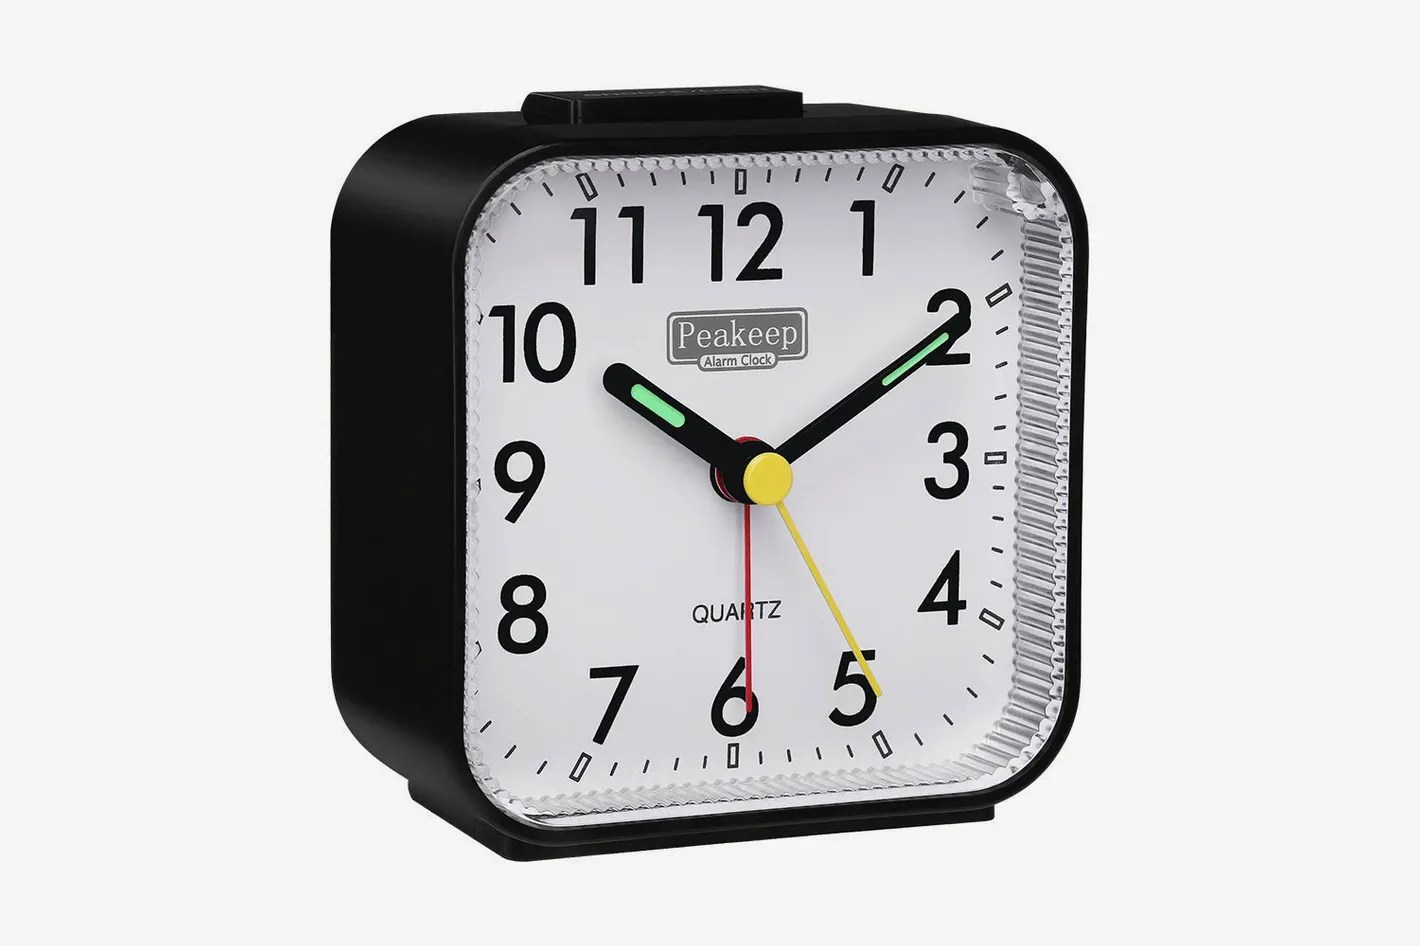 American Made Alarm Clock Peakeep Small Battery Operated Analog Travel Alarm Clock